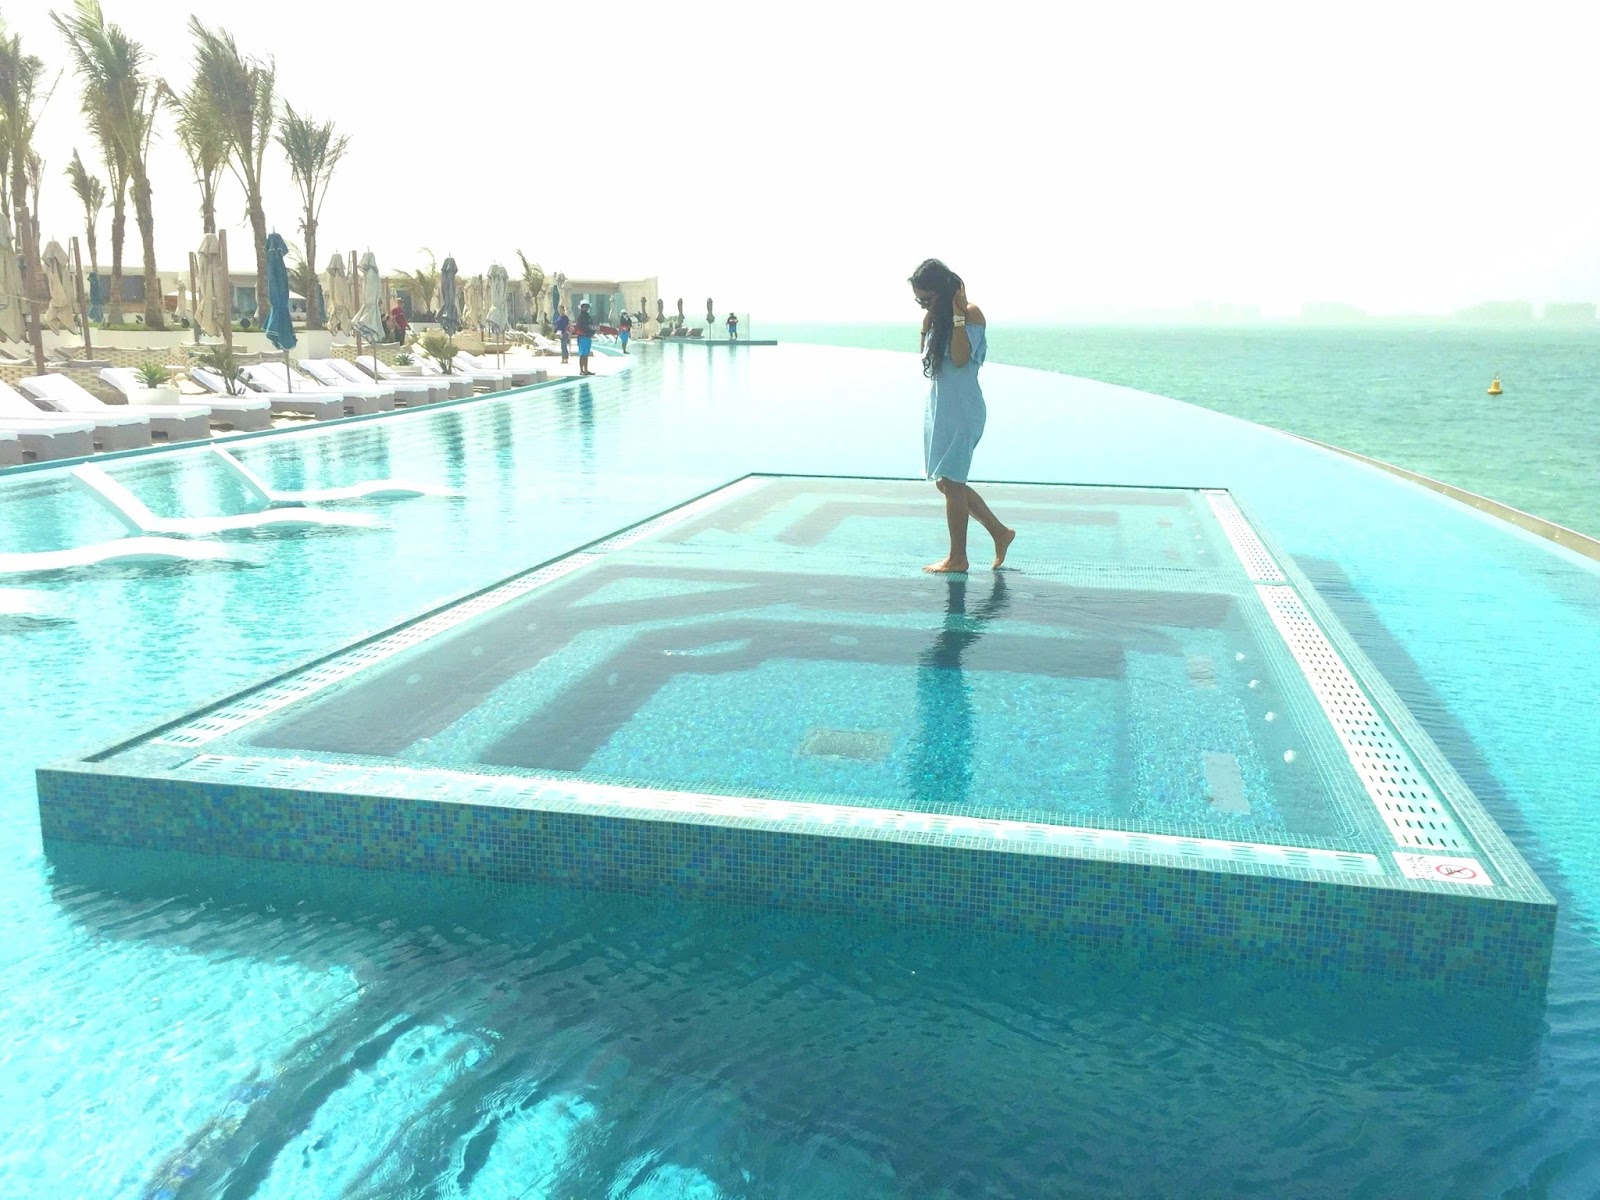 Burj Al Arab - Infinity Pool - Best luxury hotels in Dubai | Vegan Travel